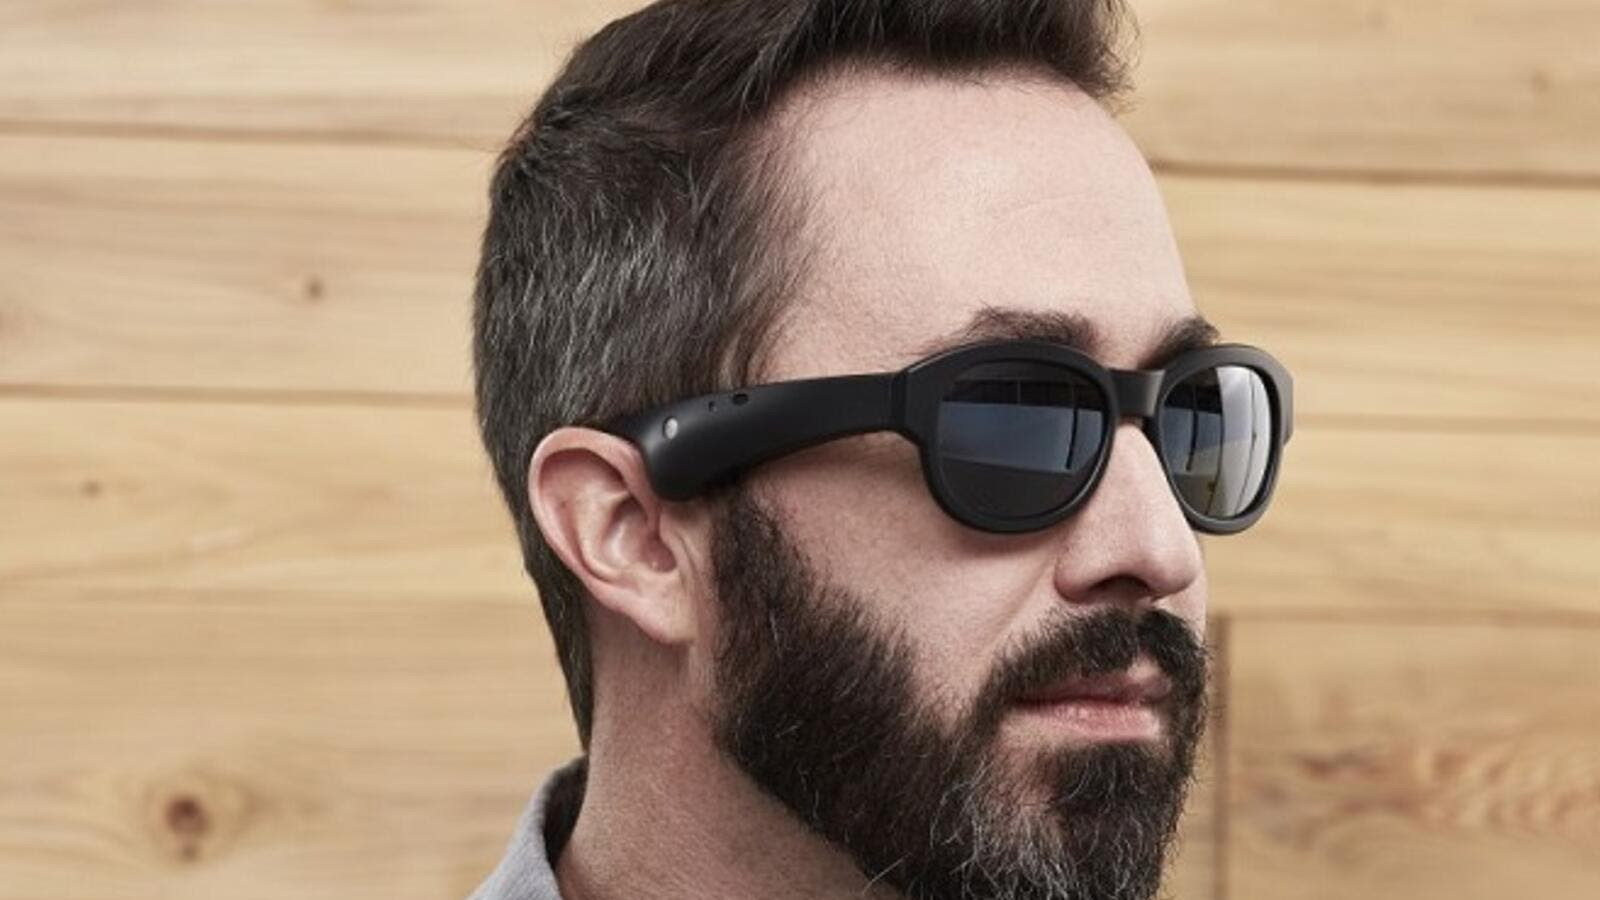 The glasses won't change what you see, but rather add a useful or enjoyable 'audible layer' to what you hear. (Tech Radar)